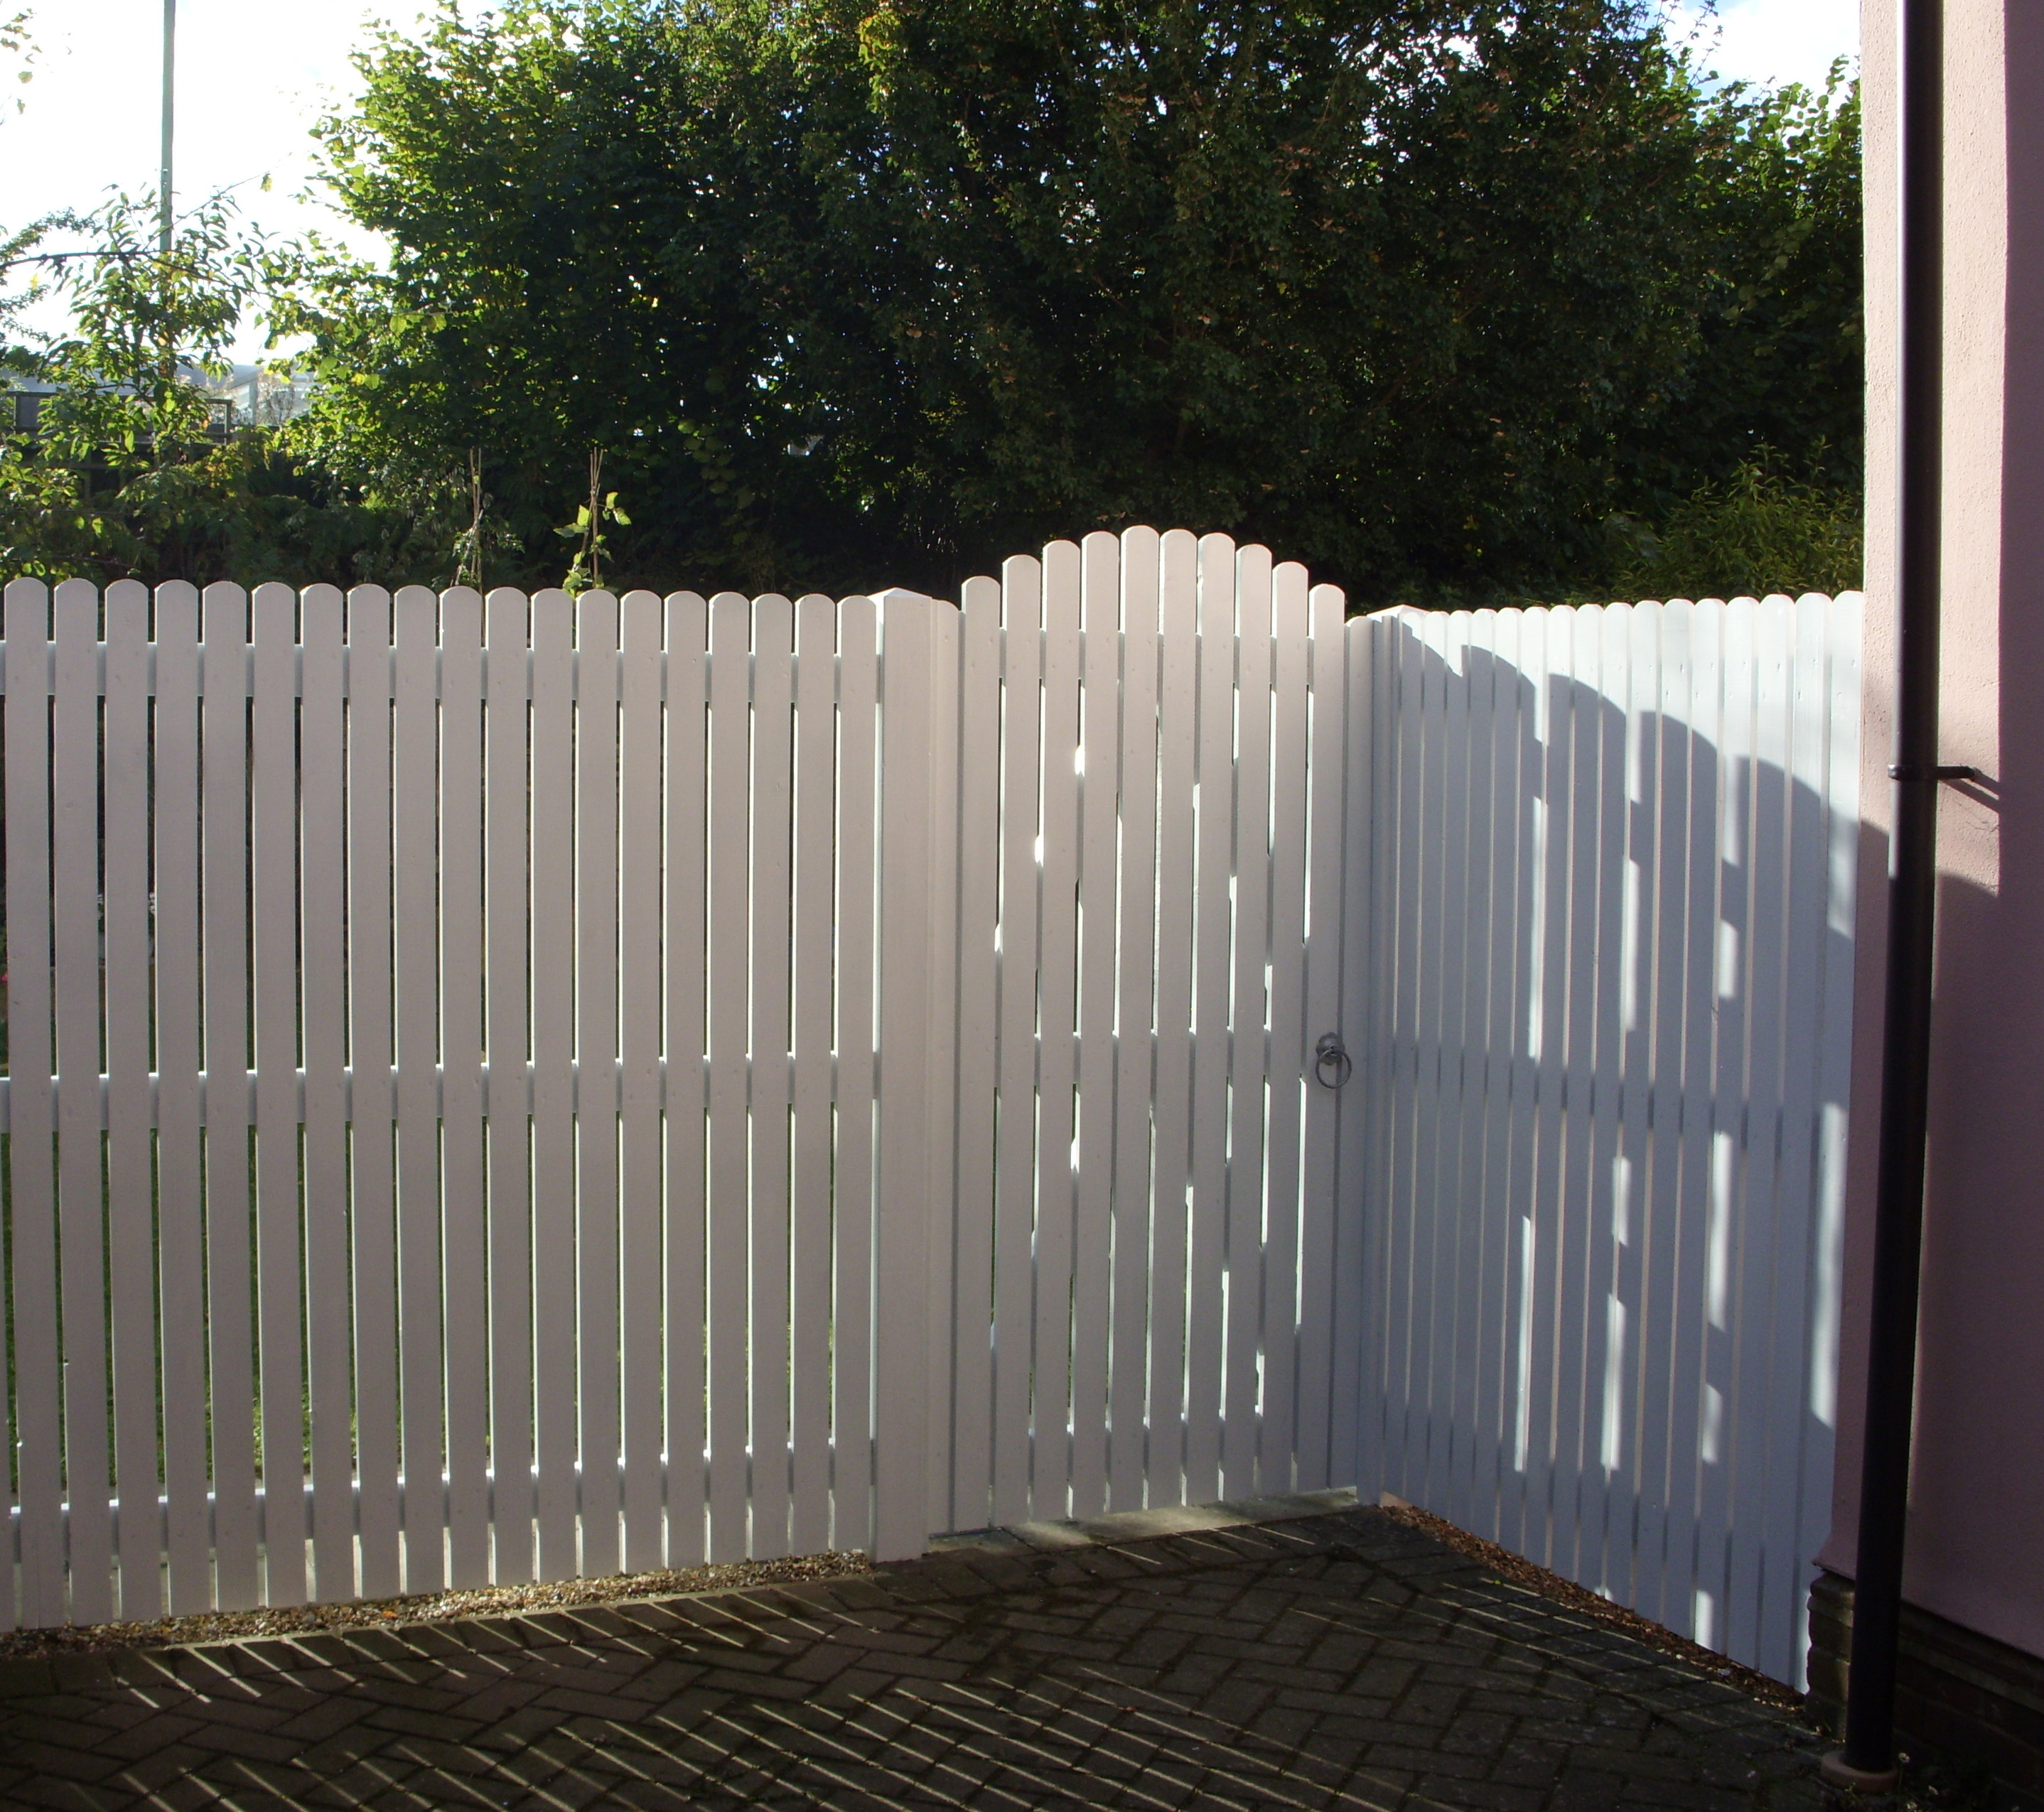 Palisade fencing and matching gate